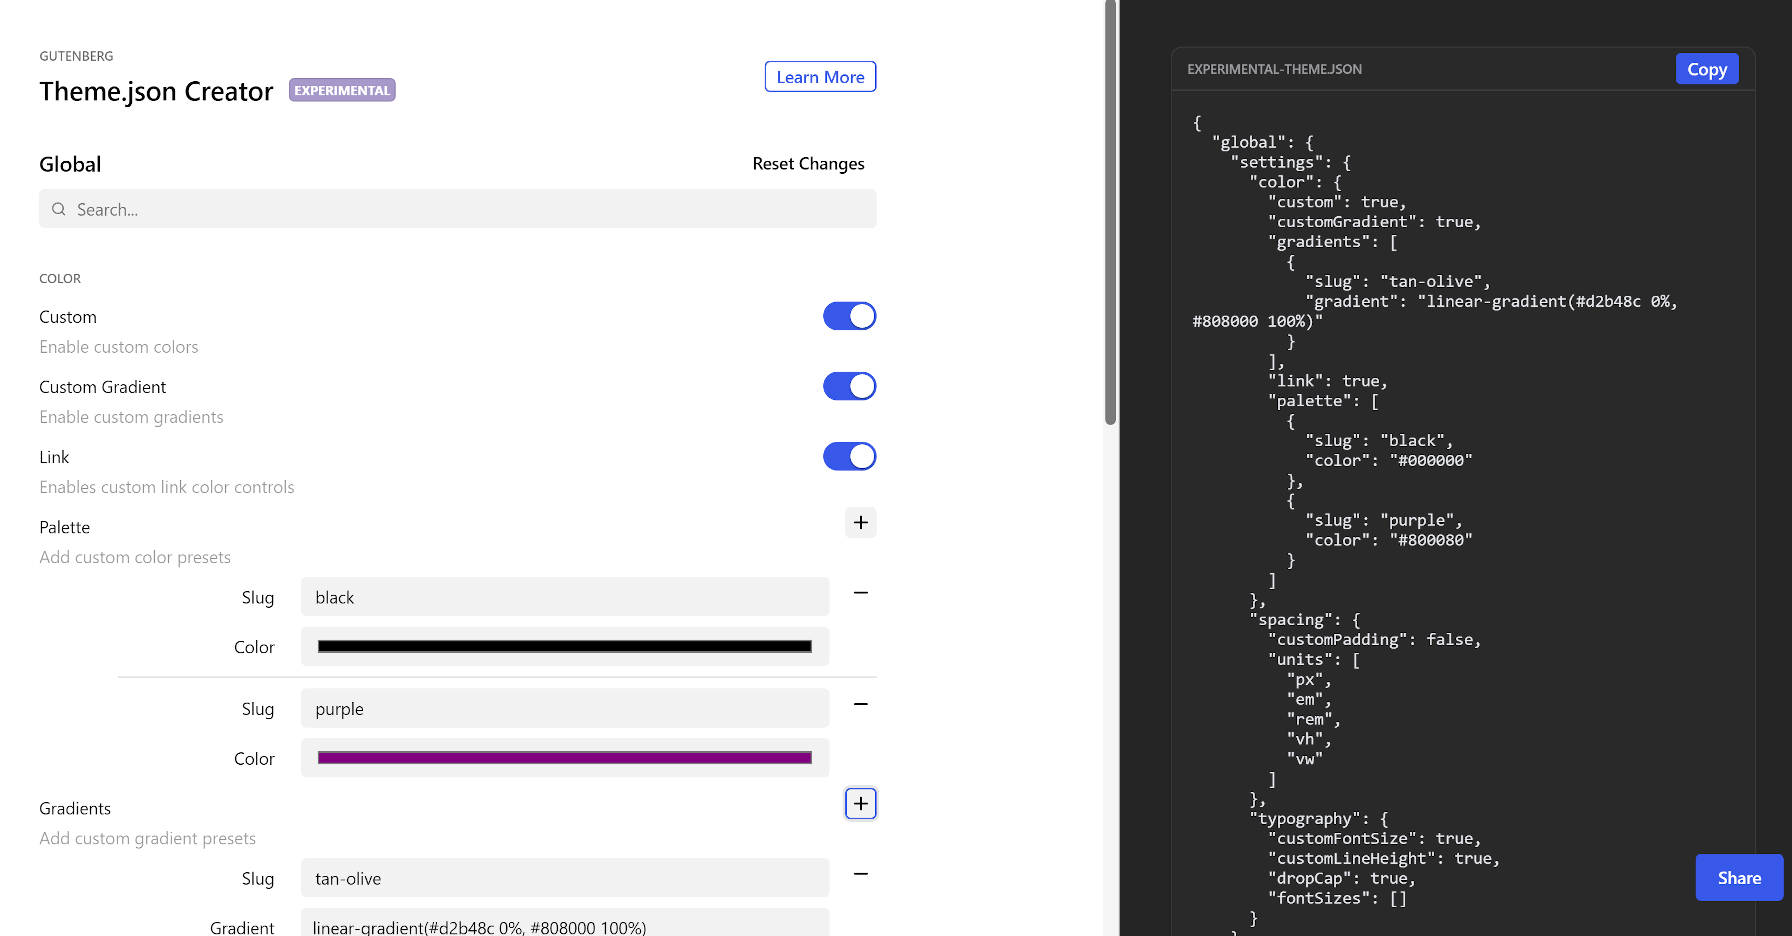 Screenshot of the Theme.json Creator web page.